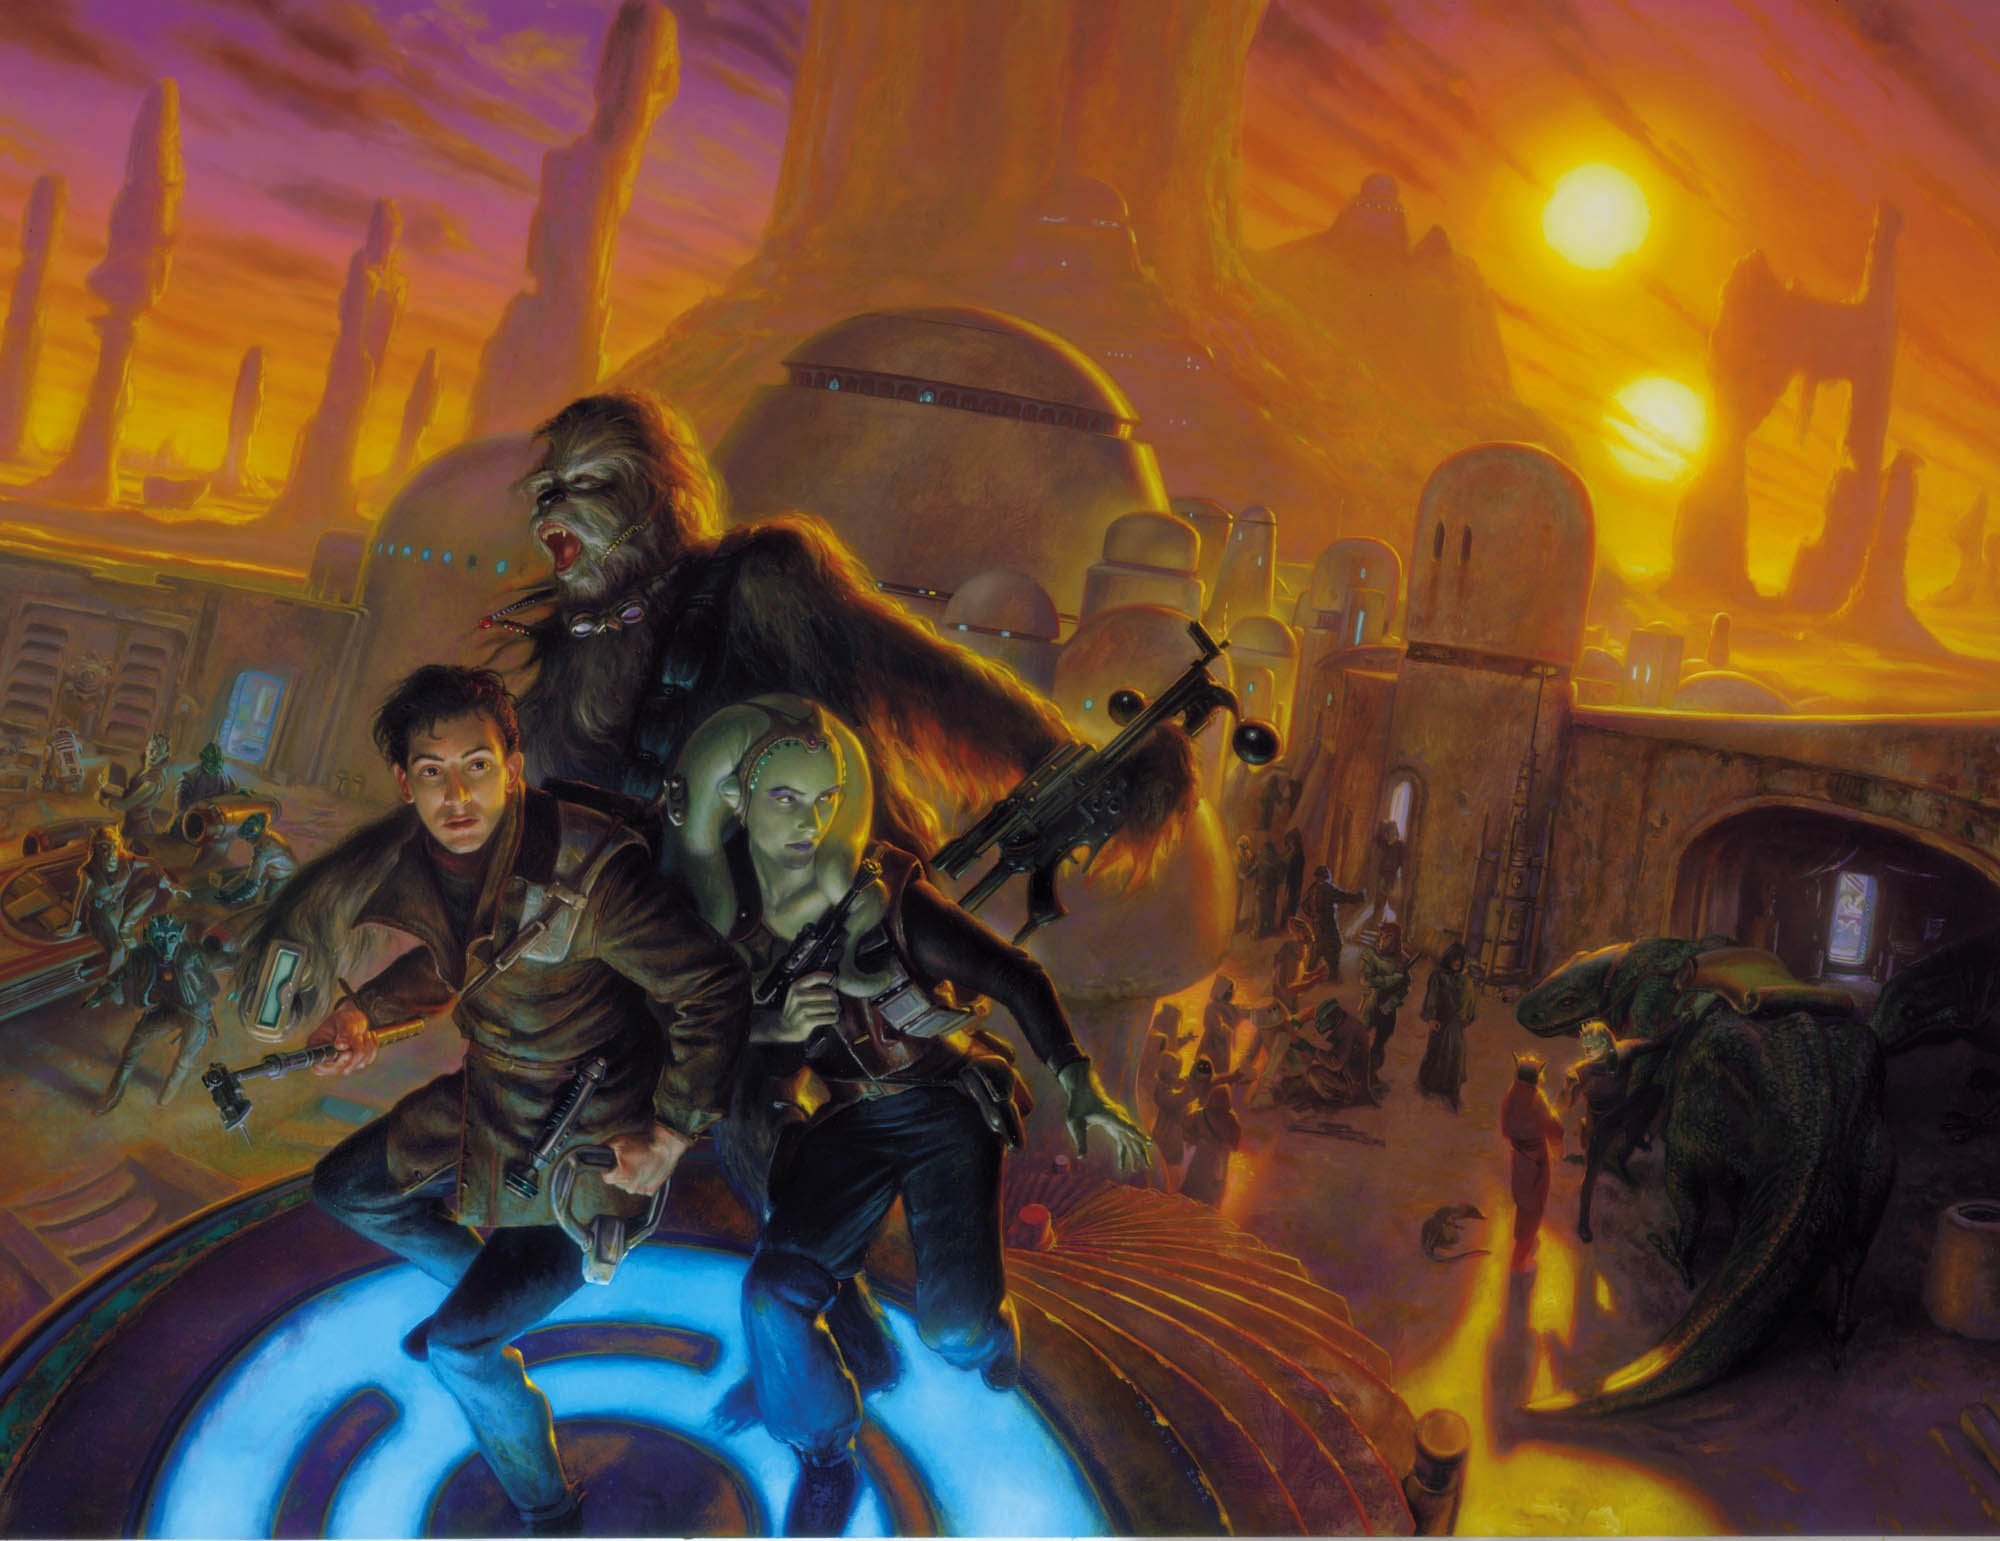 "Star Wars Galaxies 33"" x 45""  Oil on Panel 2003 advertising commission for the game from LucasArts original art available for purchase"